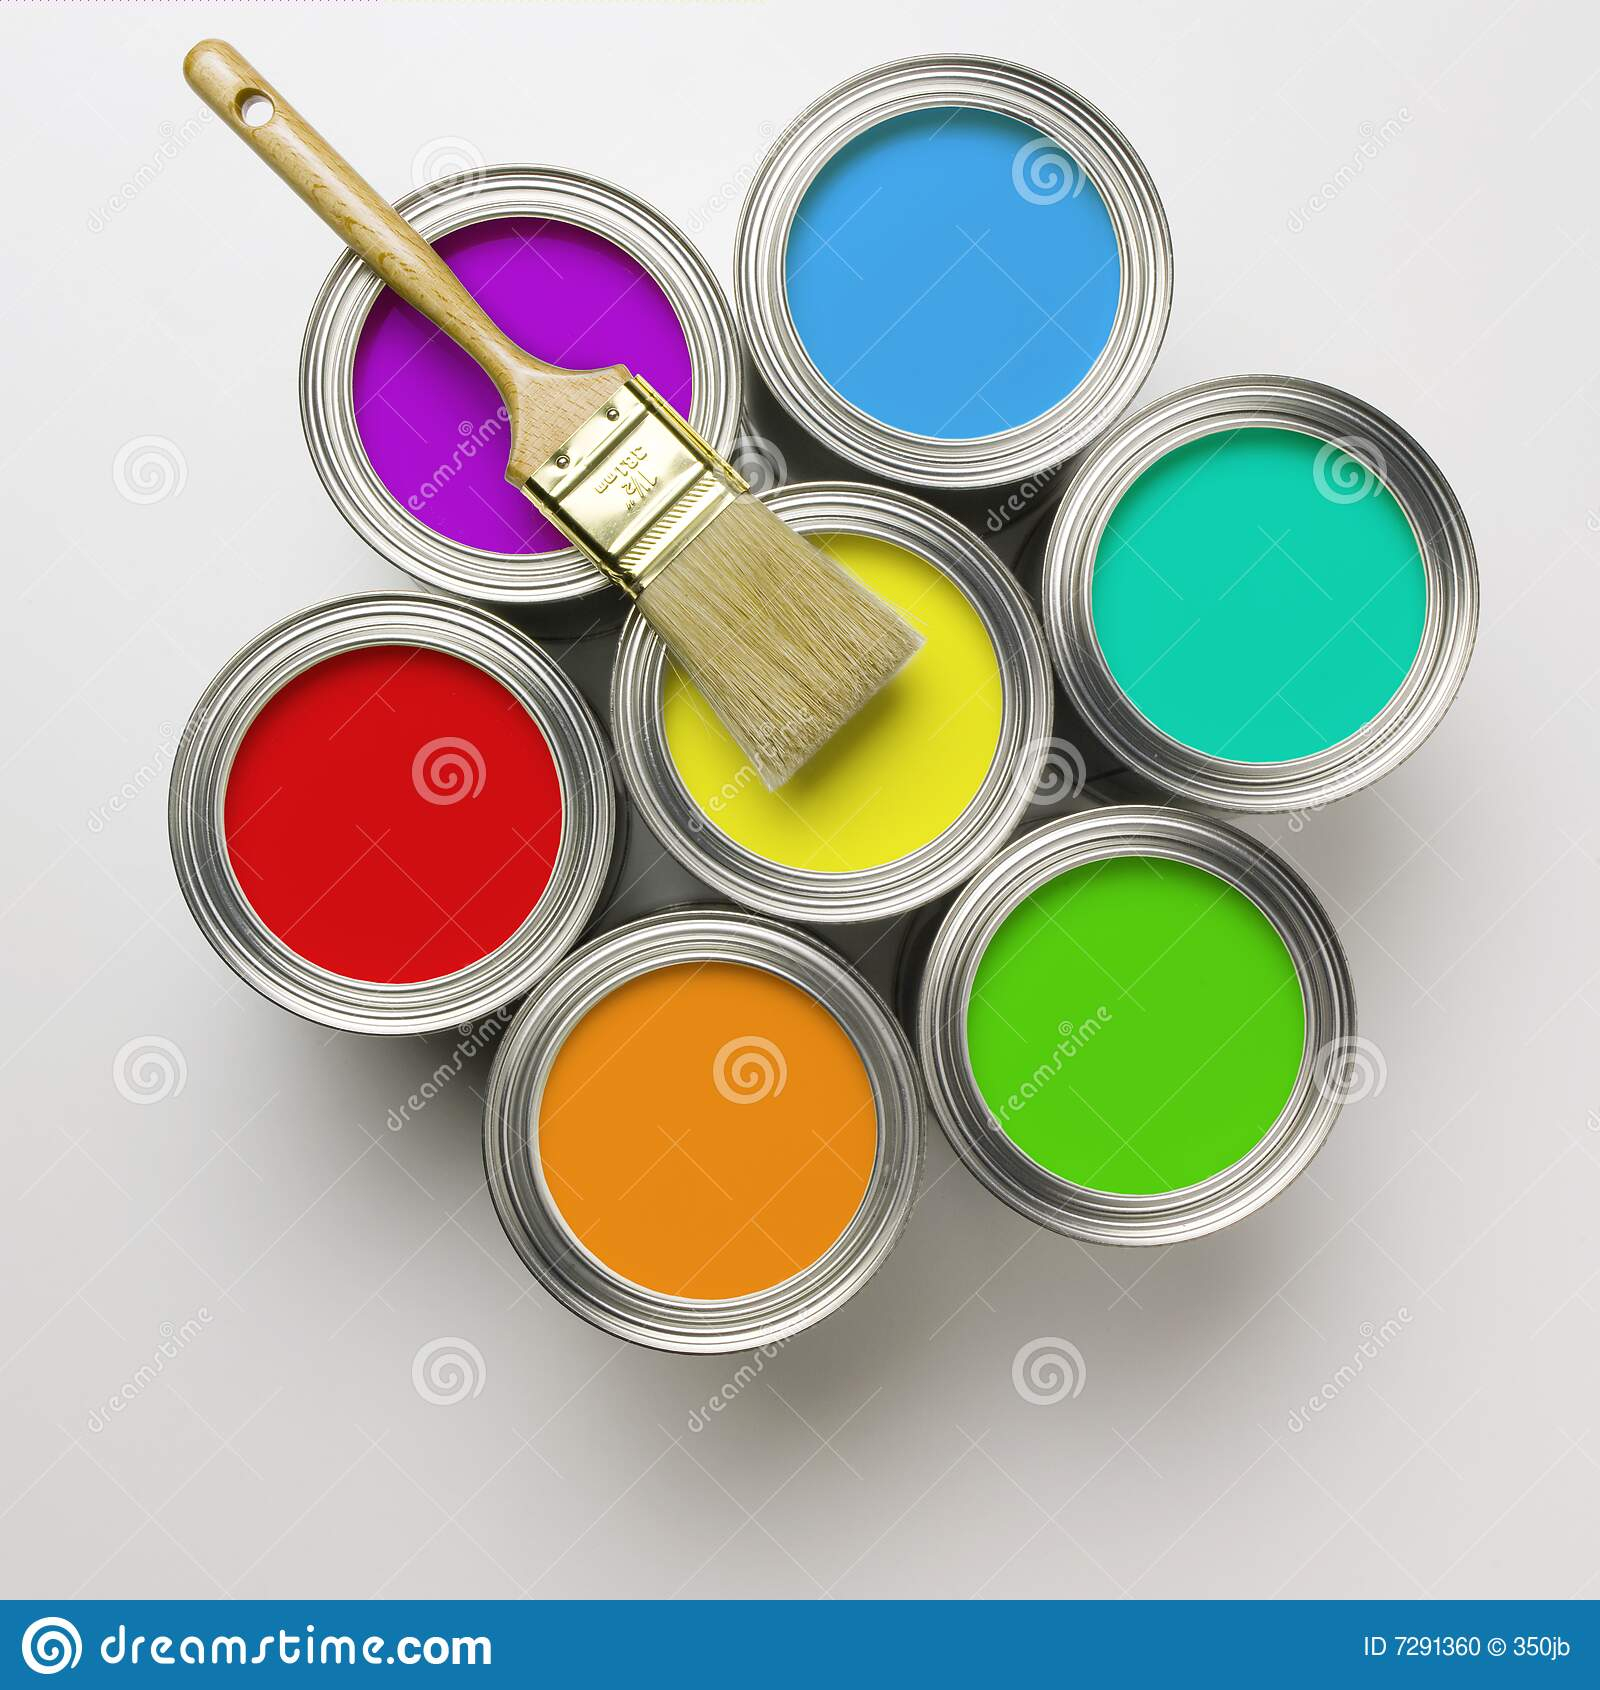 Pintura Antigravilla A Brocha Cans Of Paint With Paintbrush Stock Photo - Image Of House